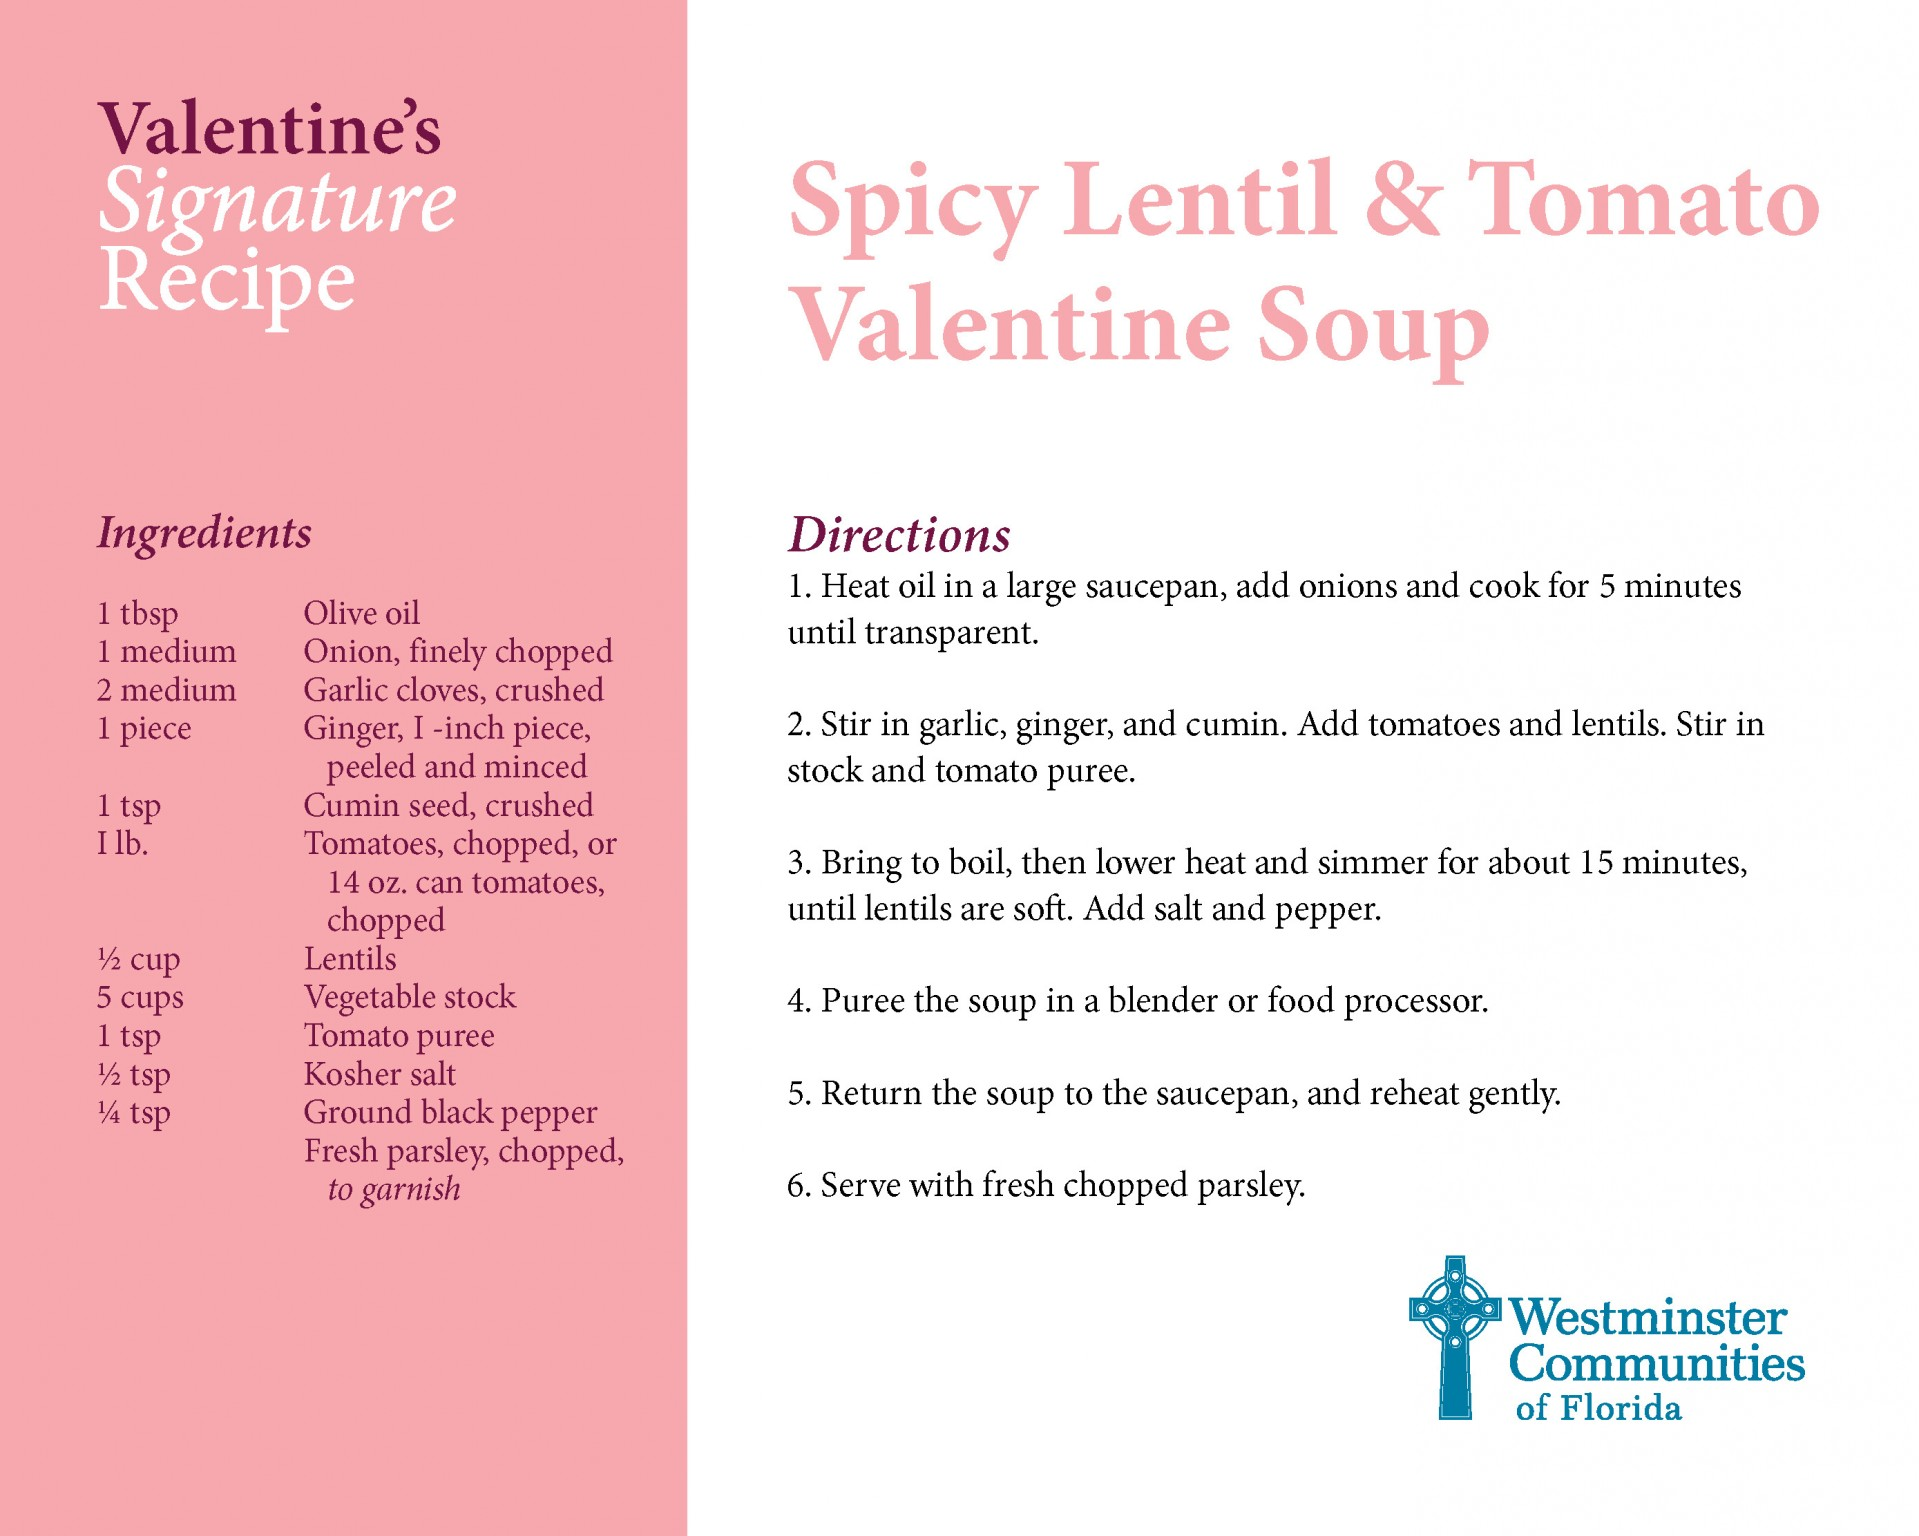 Signature Recipe for Spicy Lentil & Tomato Soup